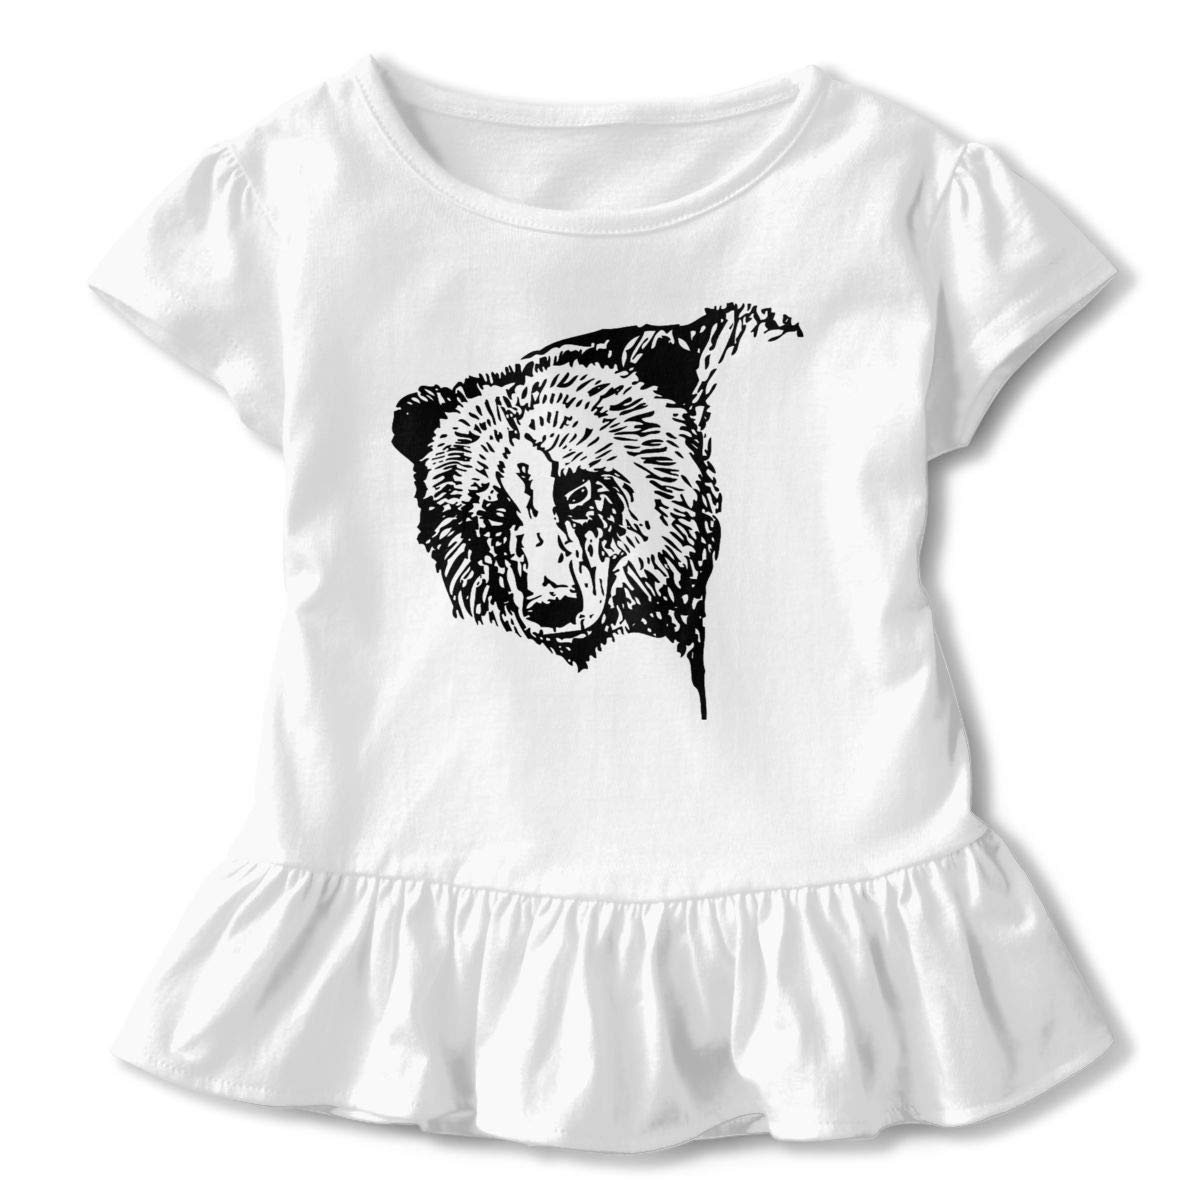 JVNSS American Black Bear Shirt Design Toddler//Infant Flounced T Shirts Graphic Tees for 2-6T Baby Girls